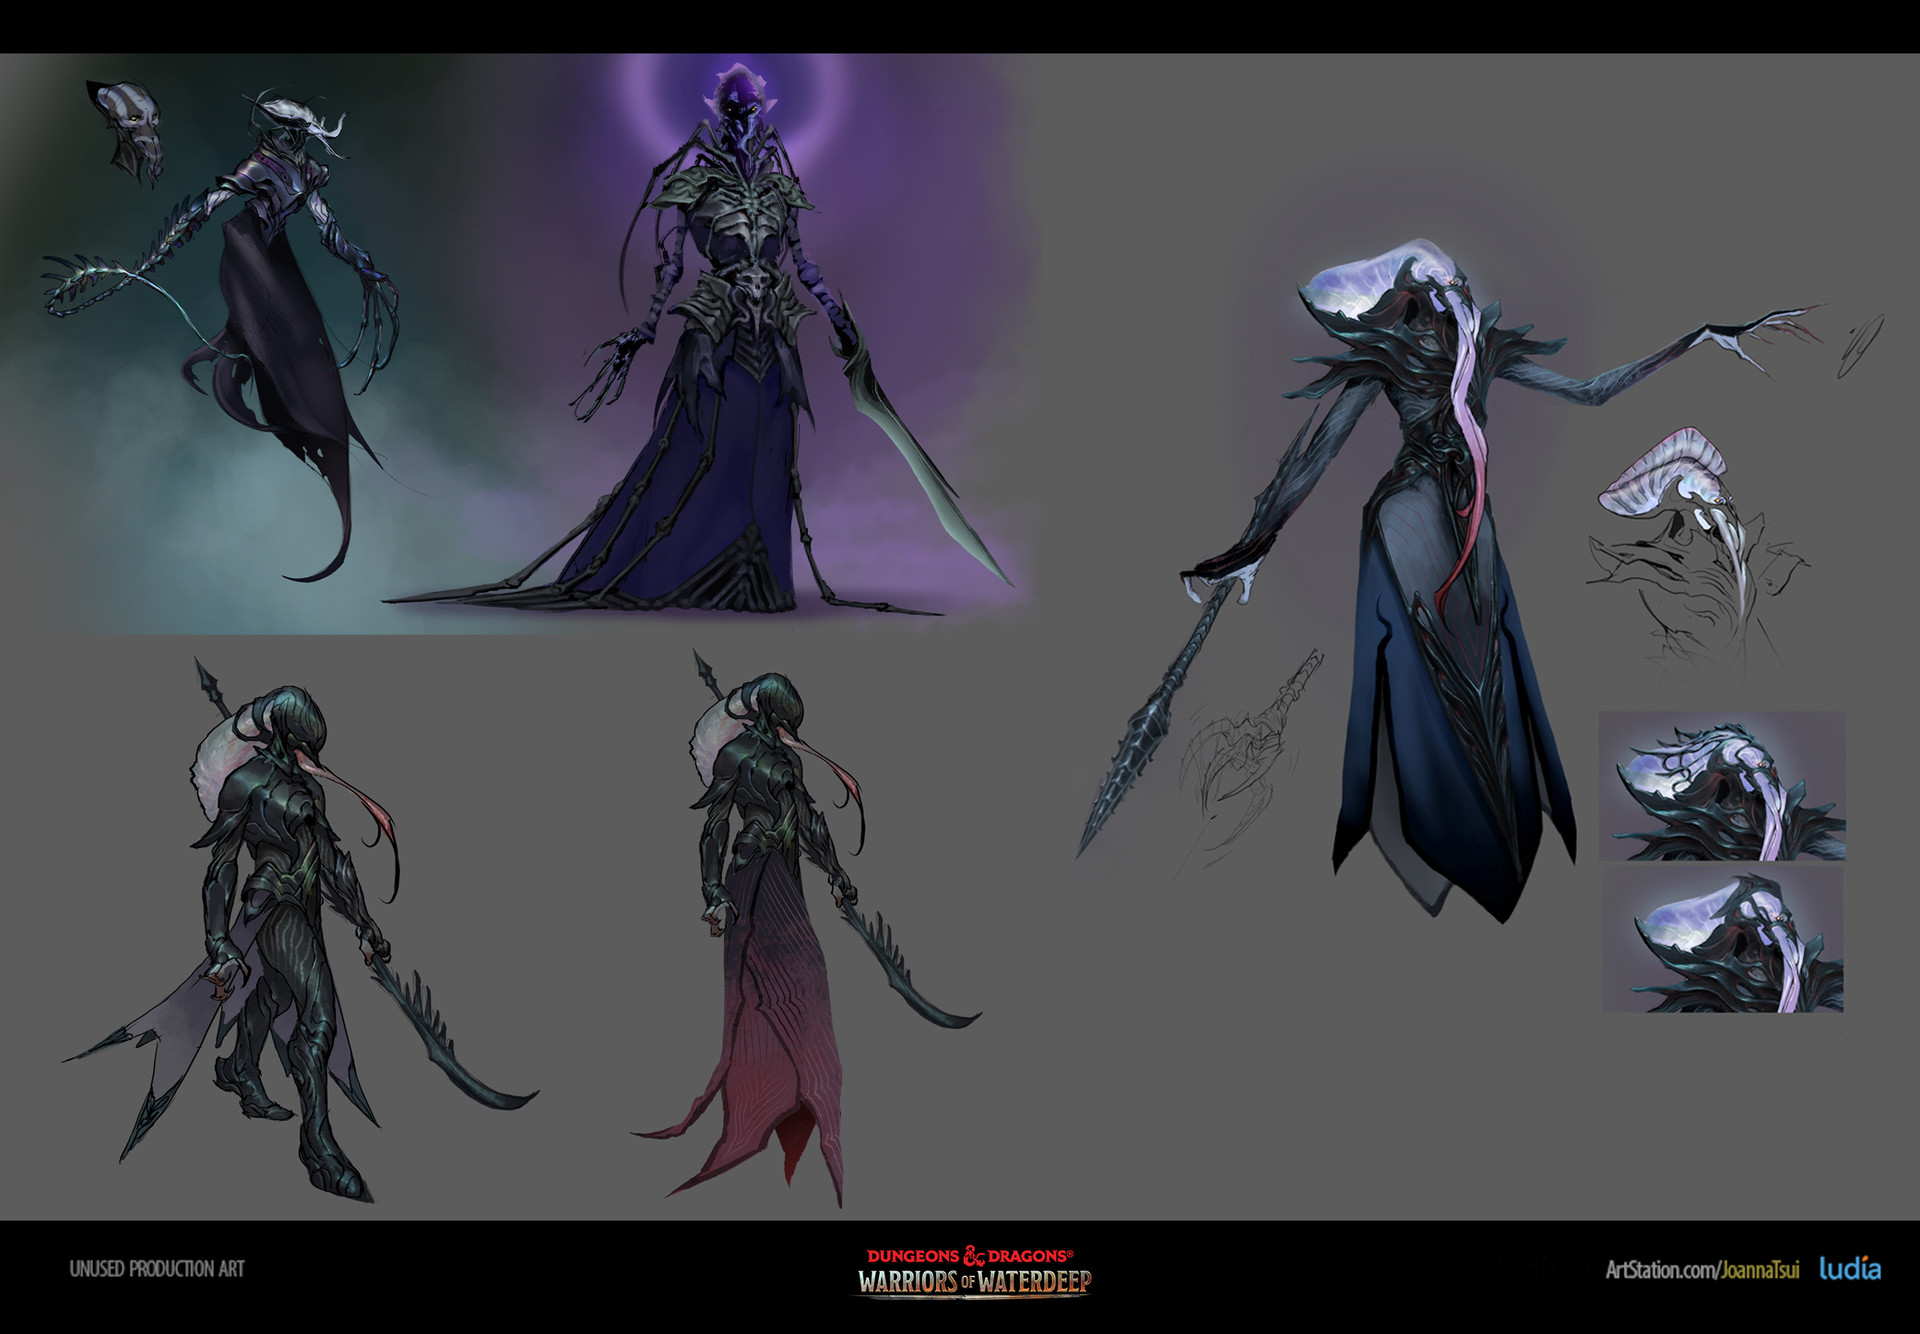 Joanna tsui mindflayer bossconcept